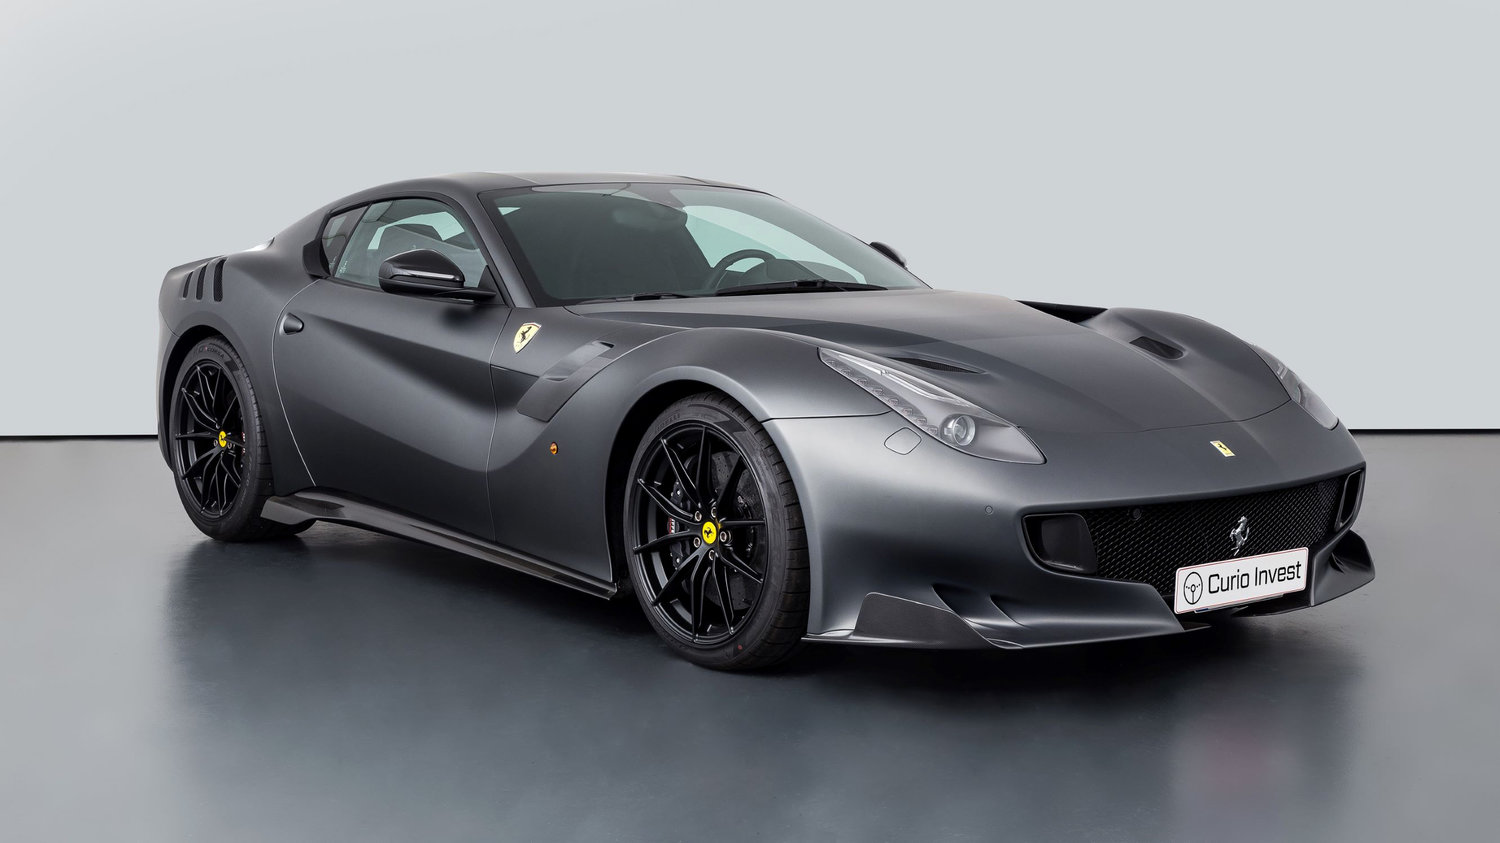 Asset Tokenization: You can invest in a Ferrari F12tdf for as little as $100